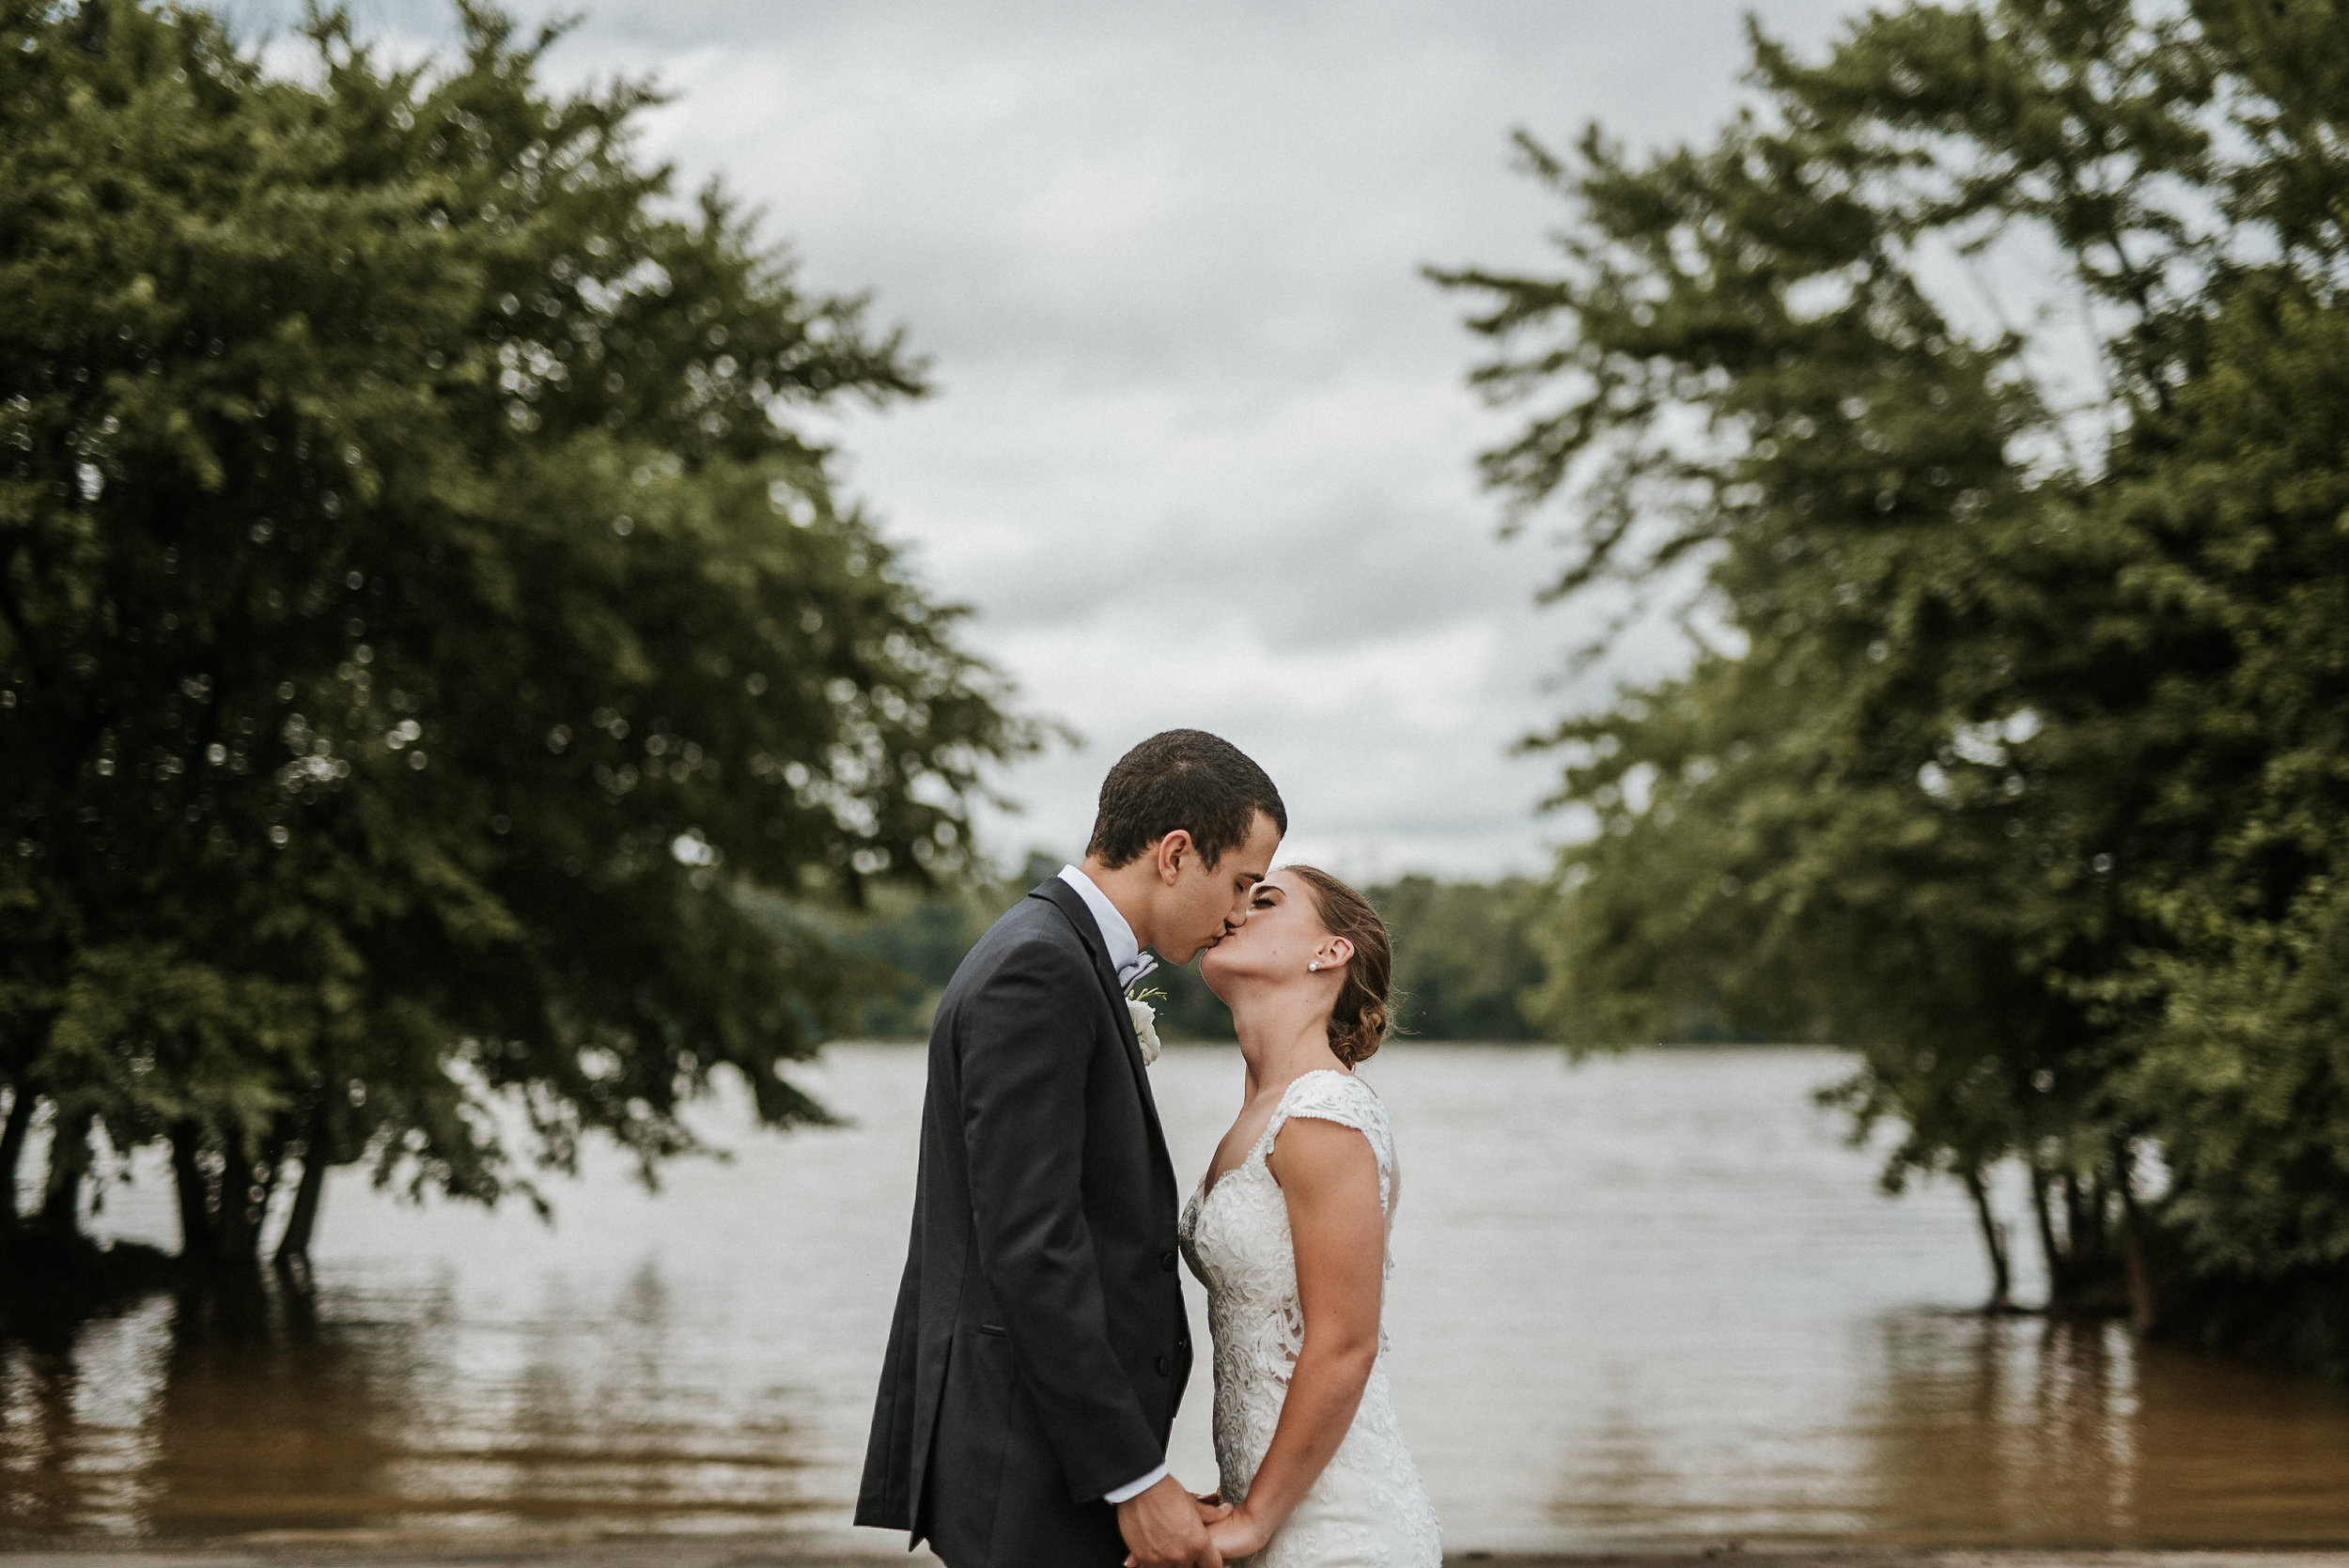 Bride and groom kissing in front of flooding